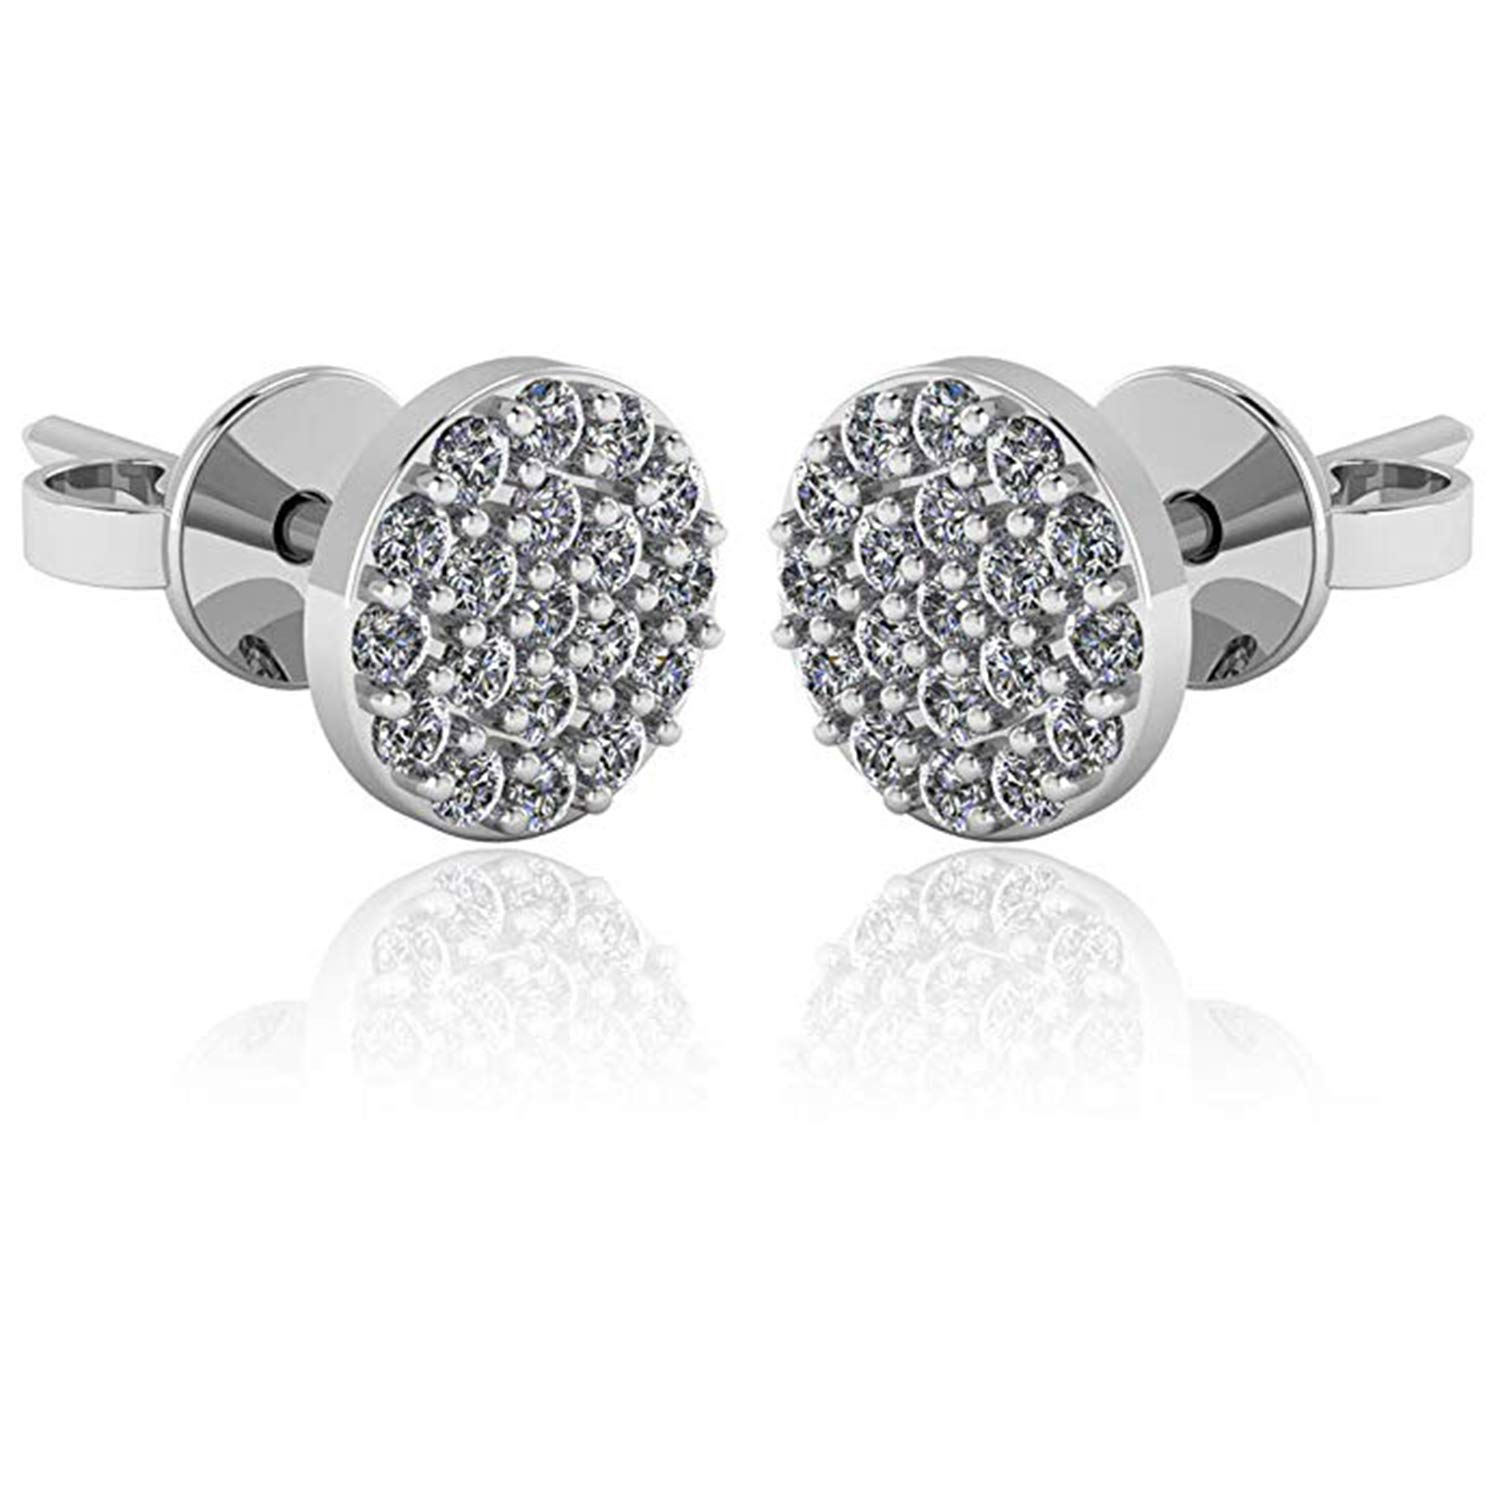 Girls Jewellery 14K White Gold Plated Simulated Diamond Studded Earrings For Womens